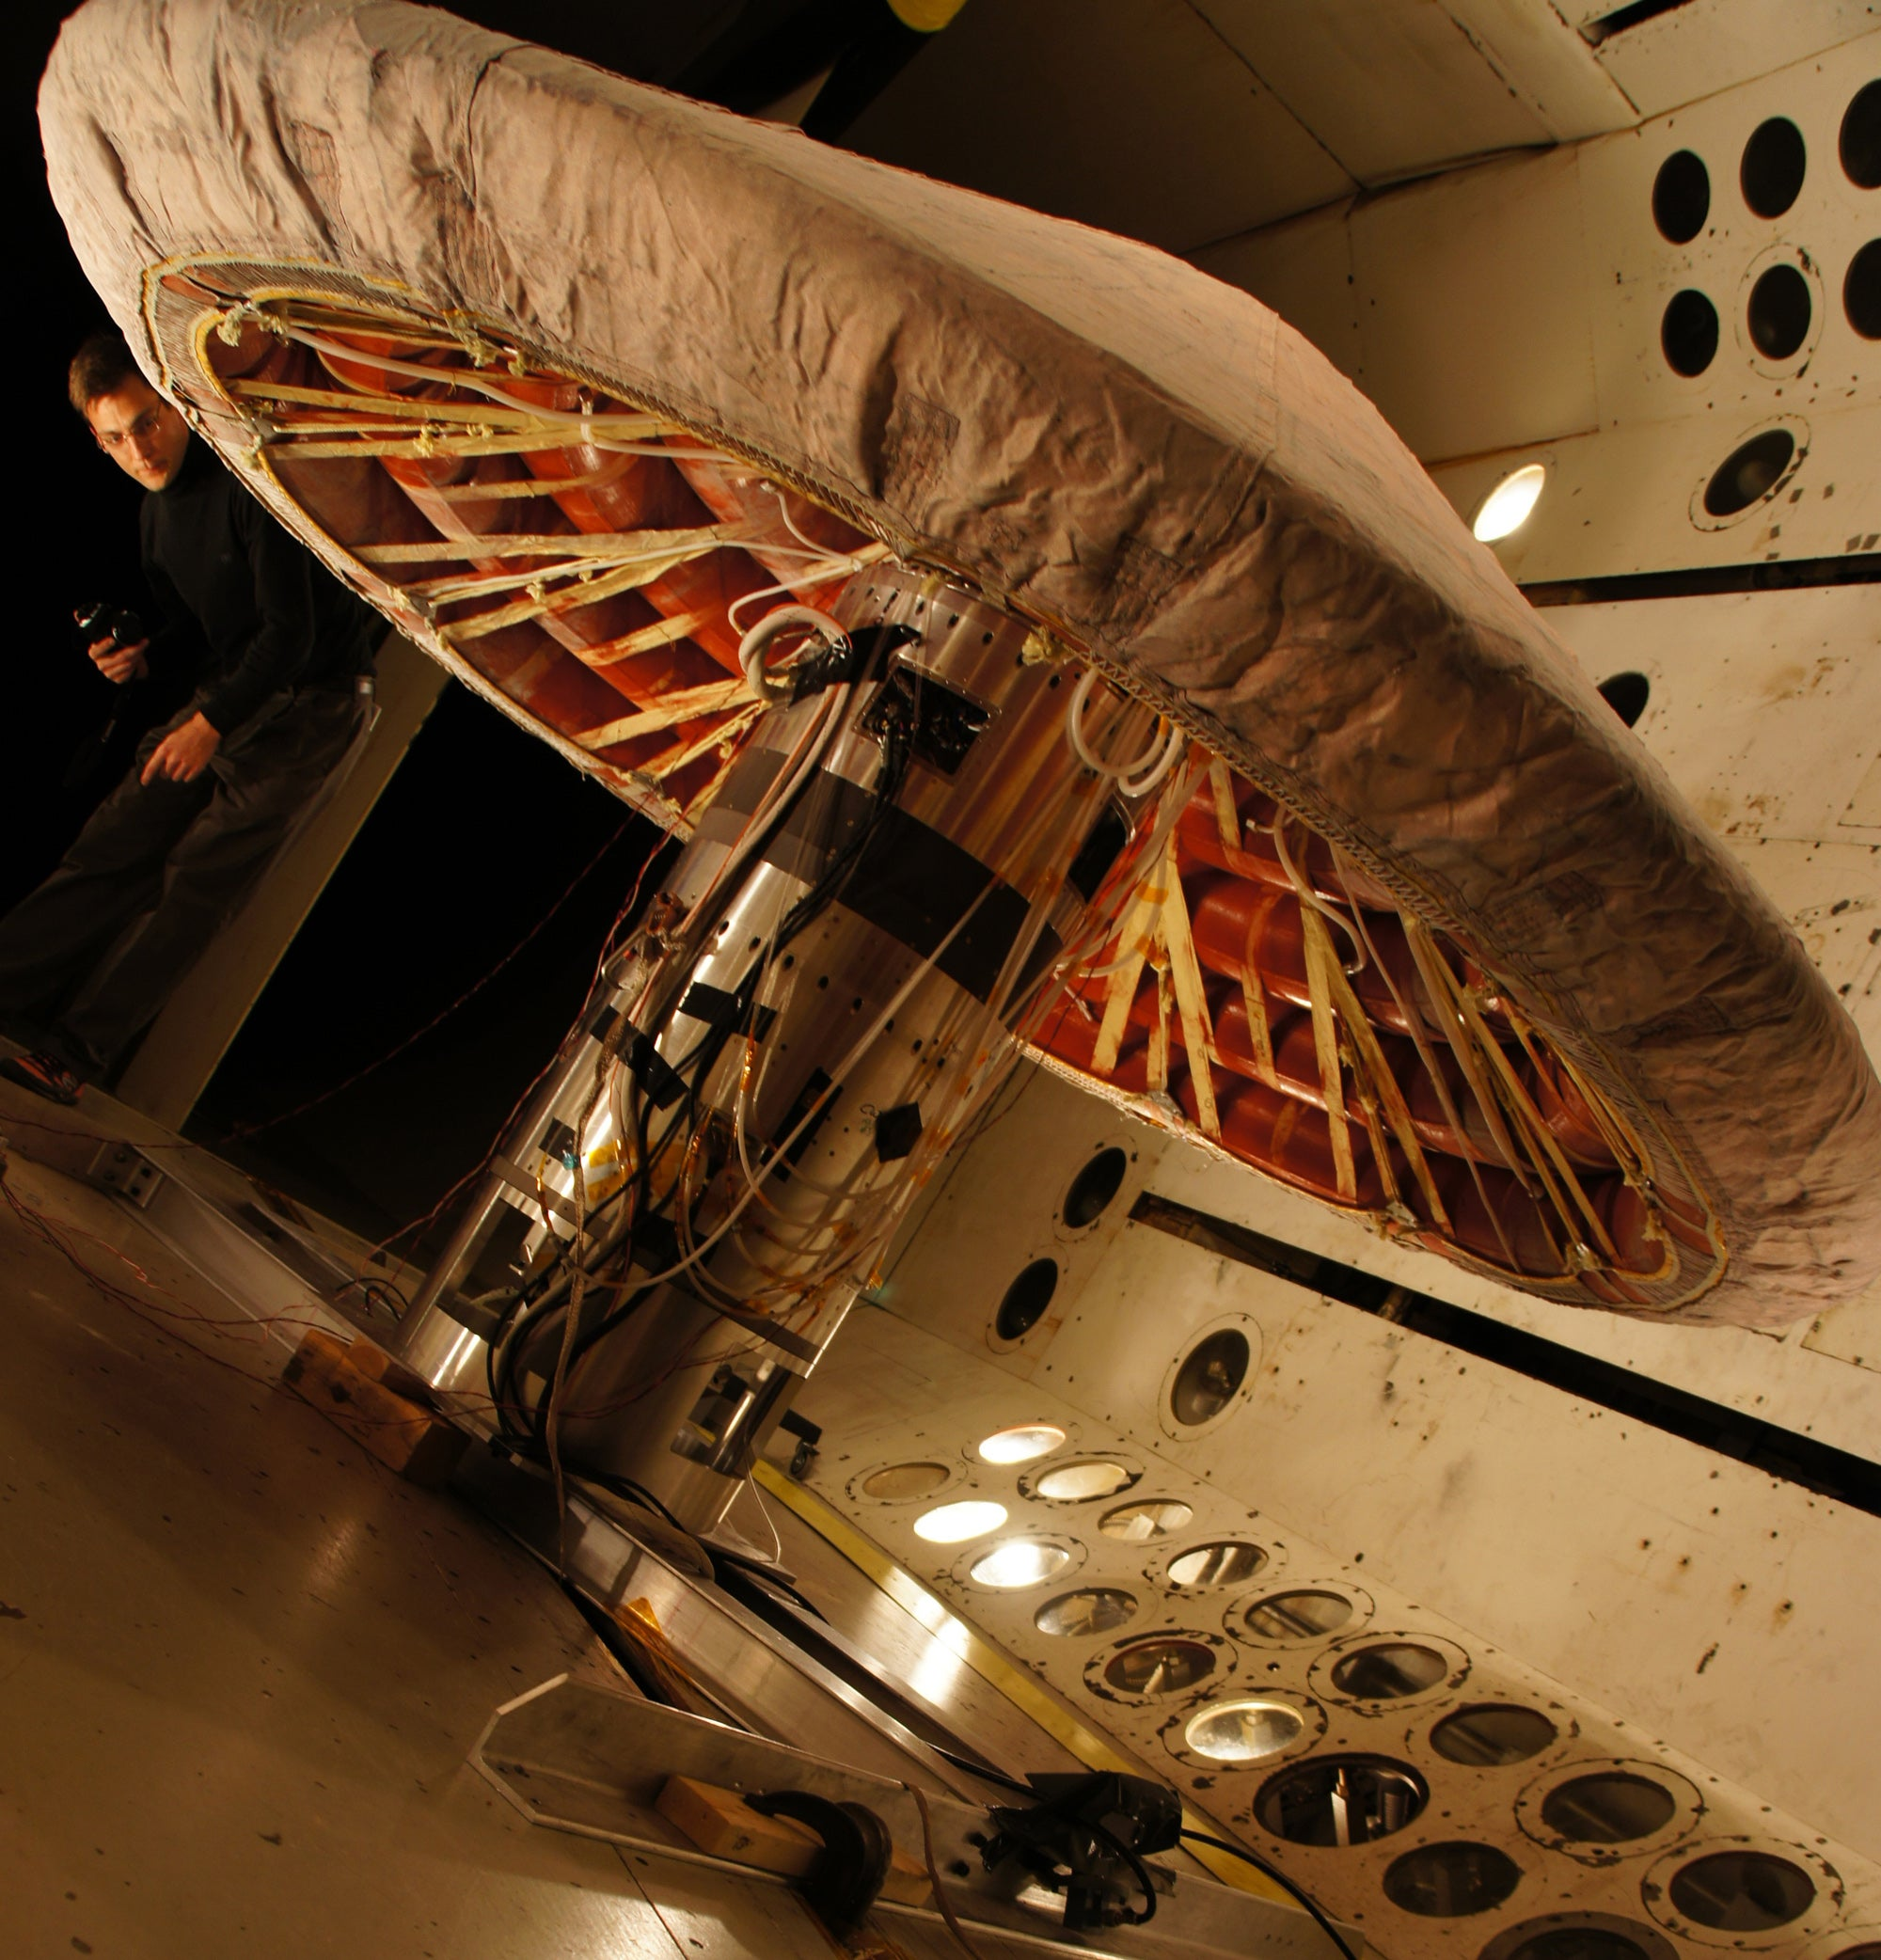 NASA Successfully Tests its Inflatable Heat Shield in Reentry